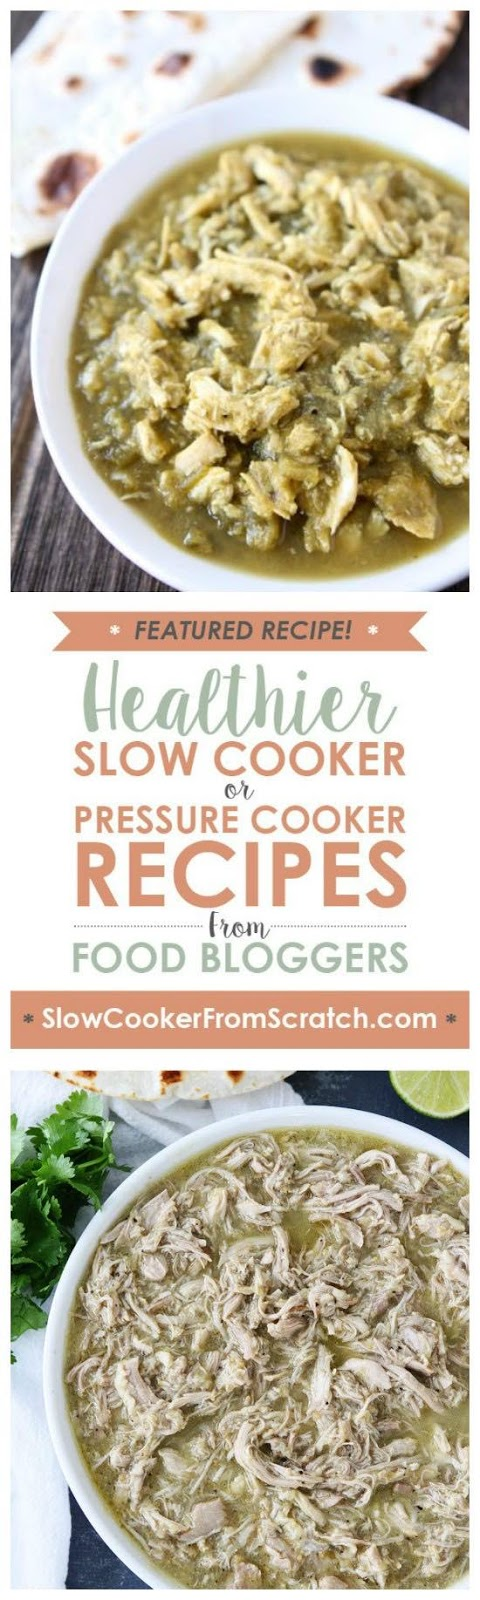 Slow Cooker or Instant Pot Chicken Chile Verde from Two Peas and Their Pod found on SlowCookerFromScratch.com